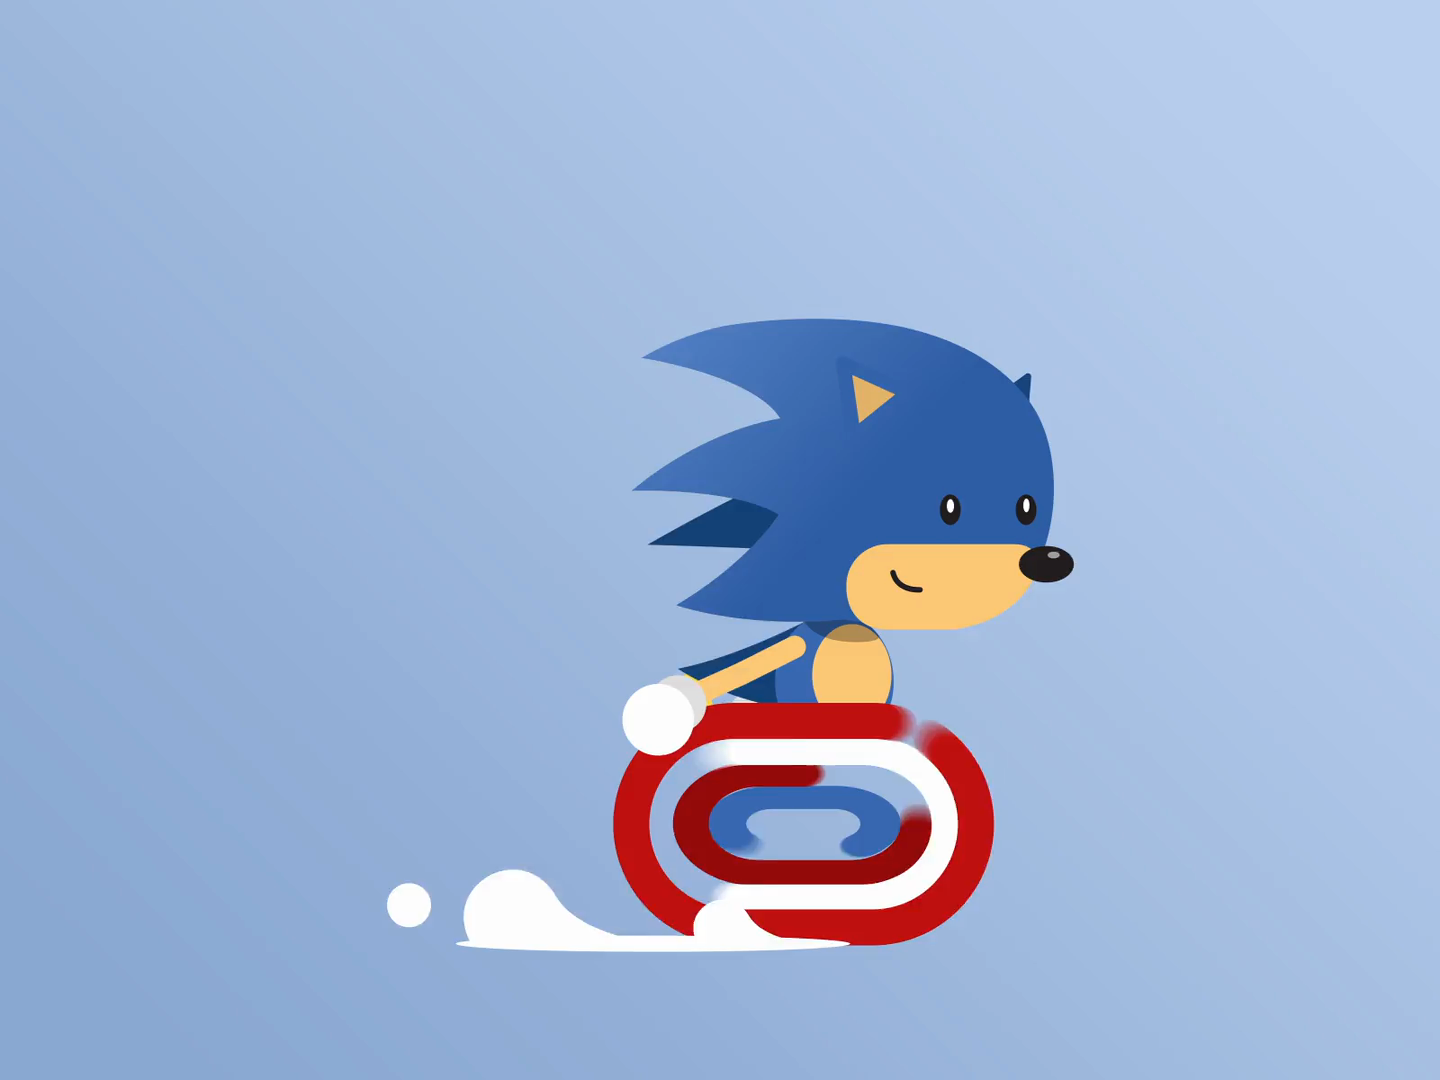 Running Cycle Sonic The Hedgehog By Philip M Park On Dribbble